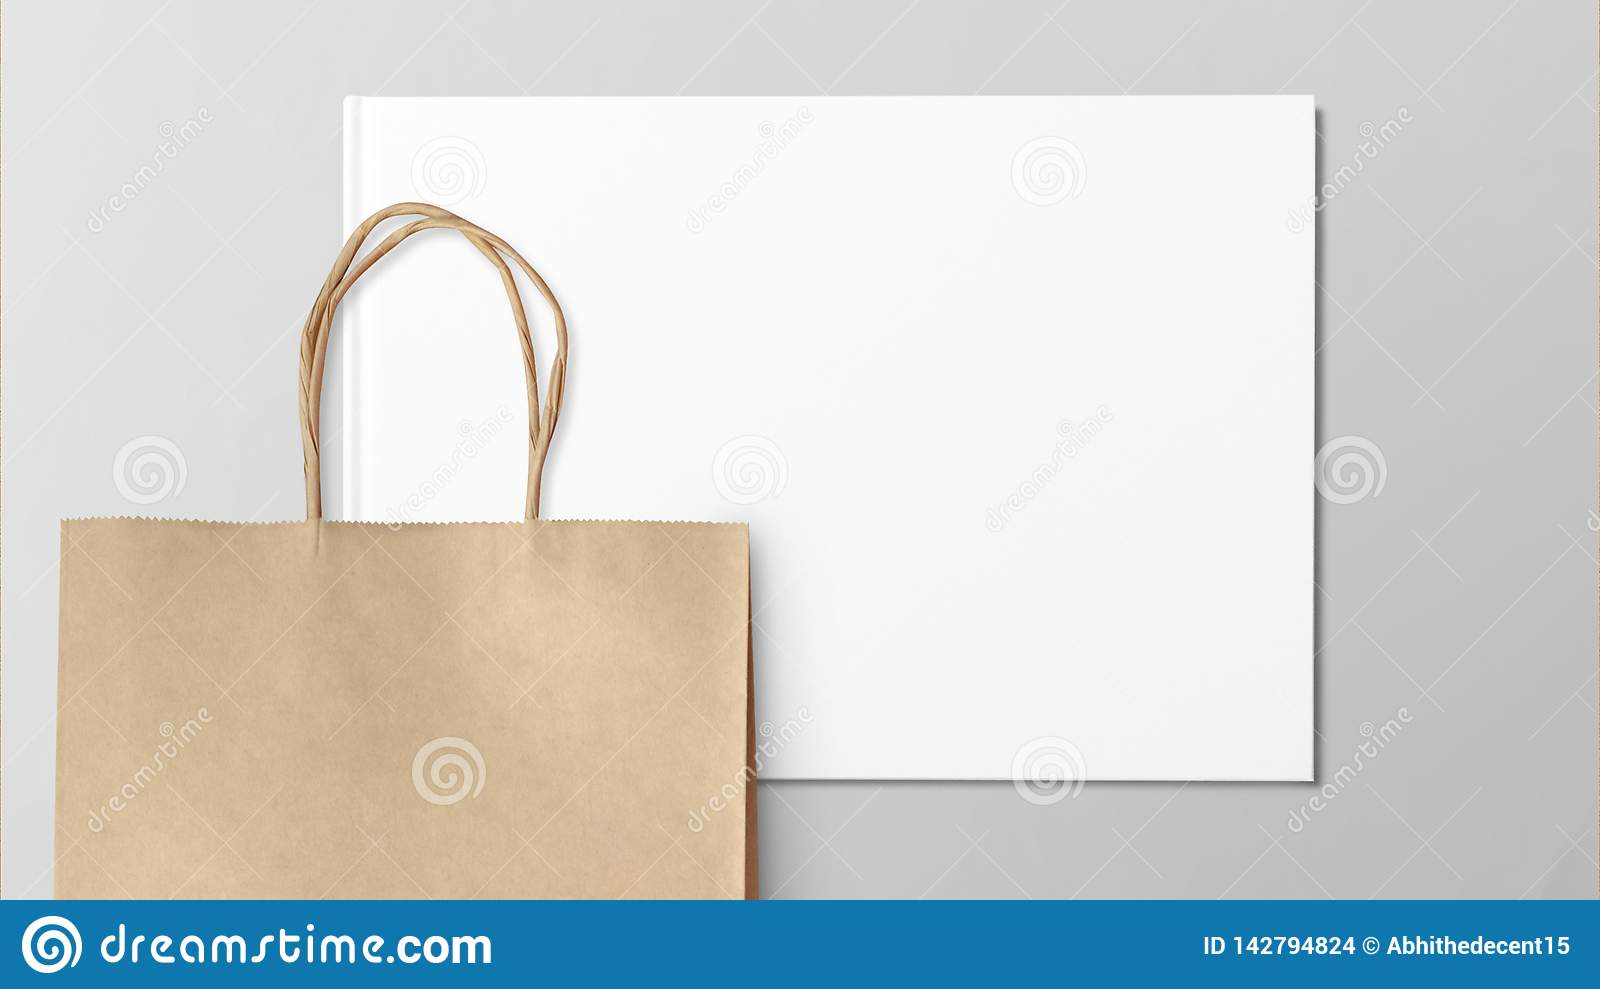 Paper shopping bag isolated on grey background